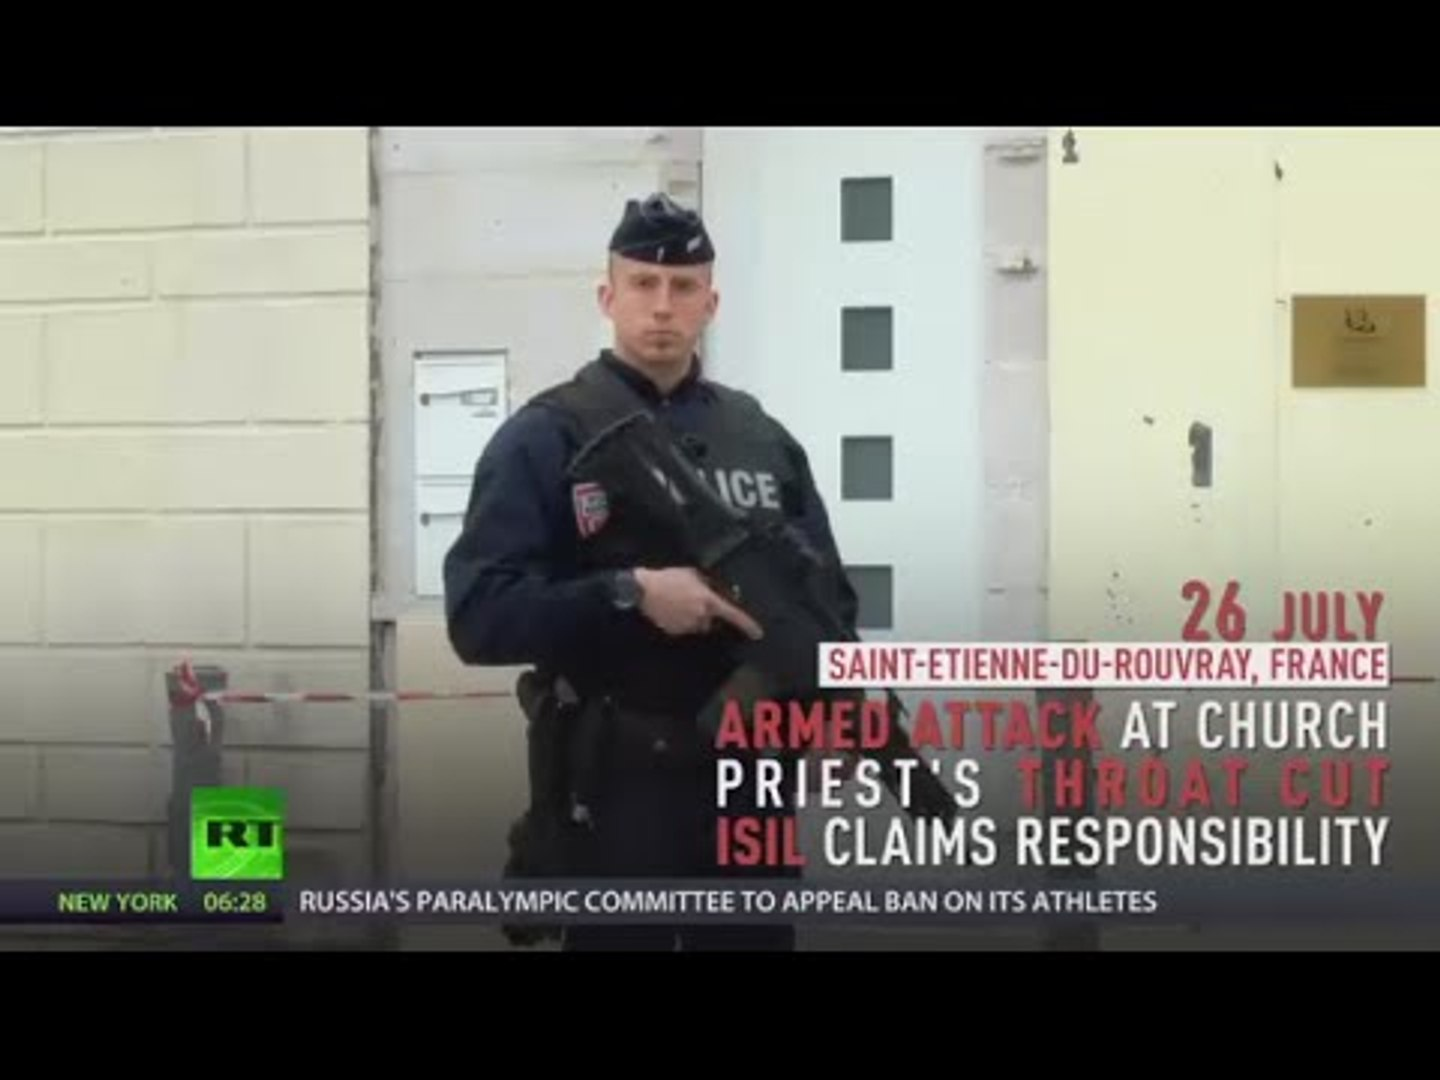 Terror Routine: Europeans now seeing terrorism as almost daily threat to lives